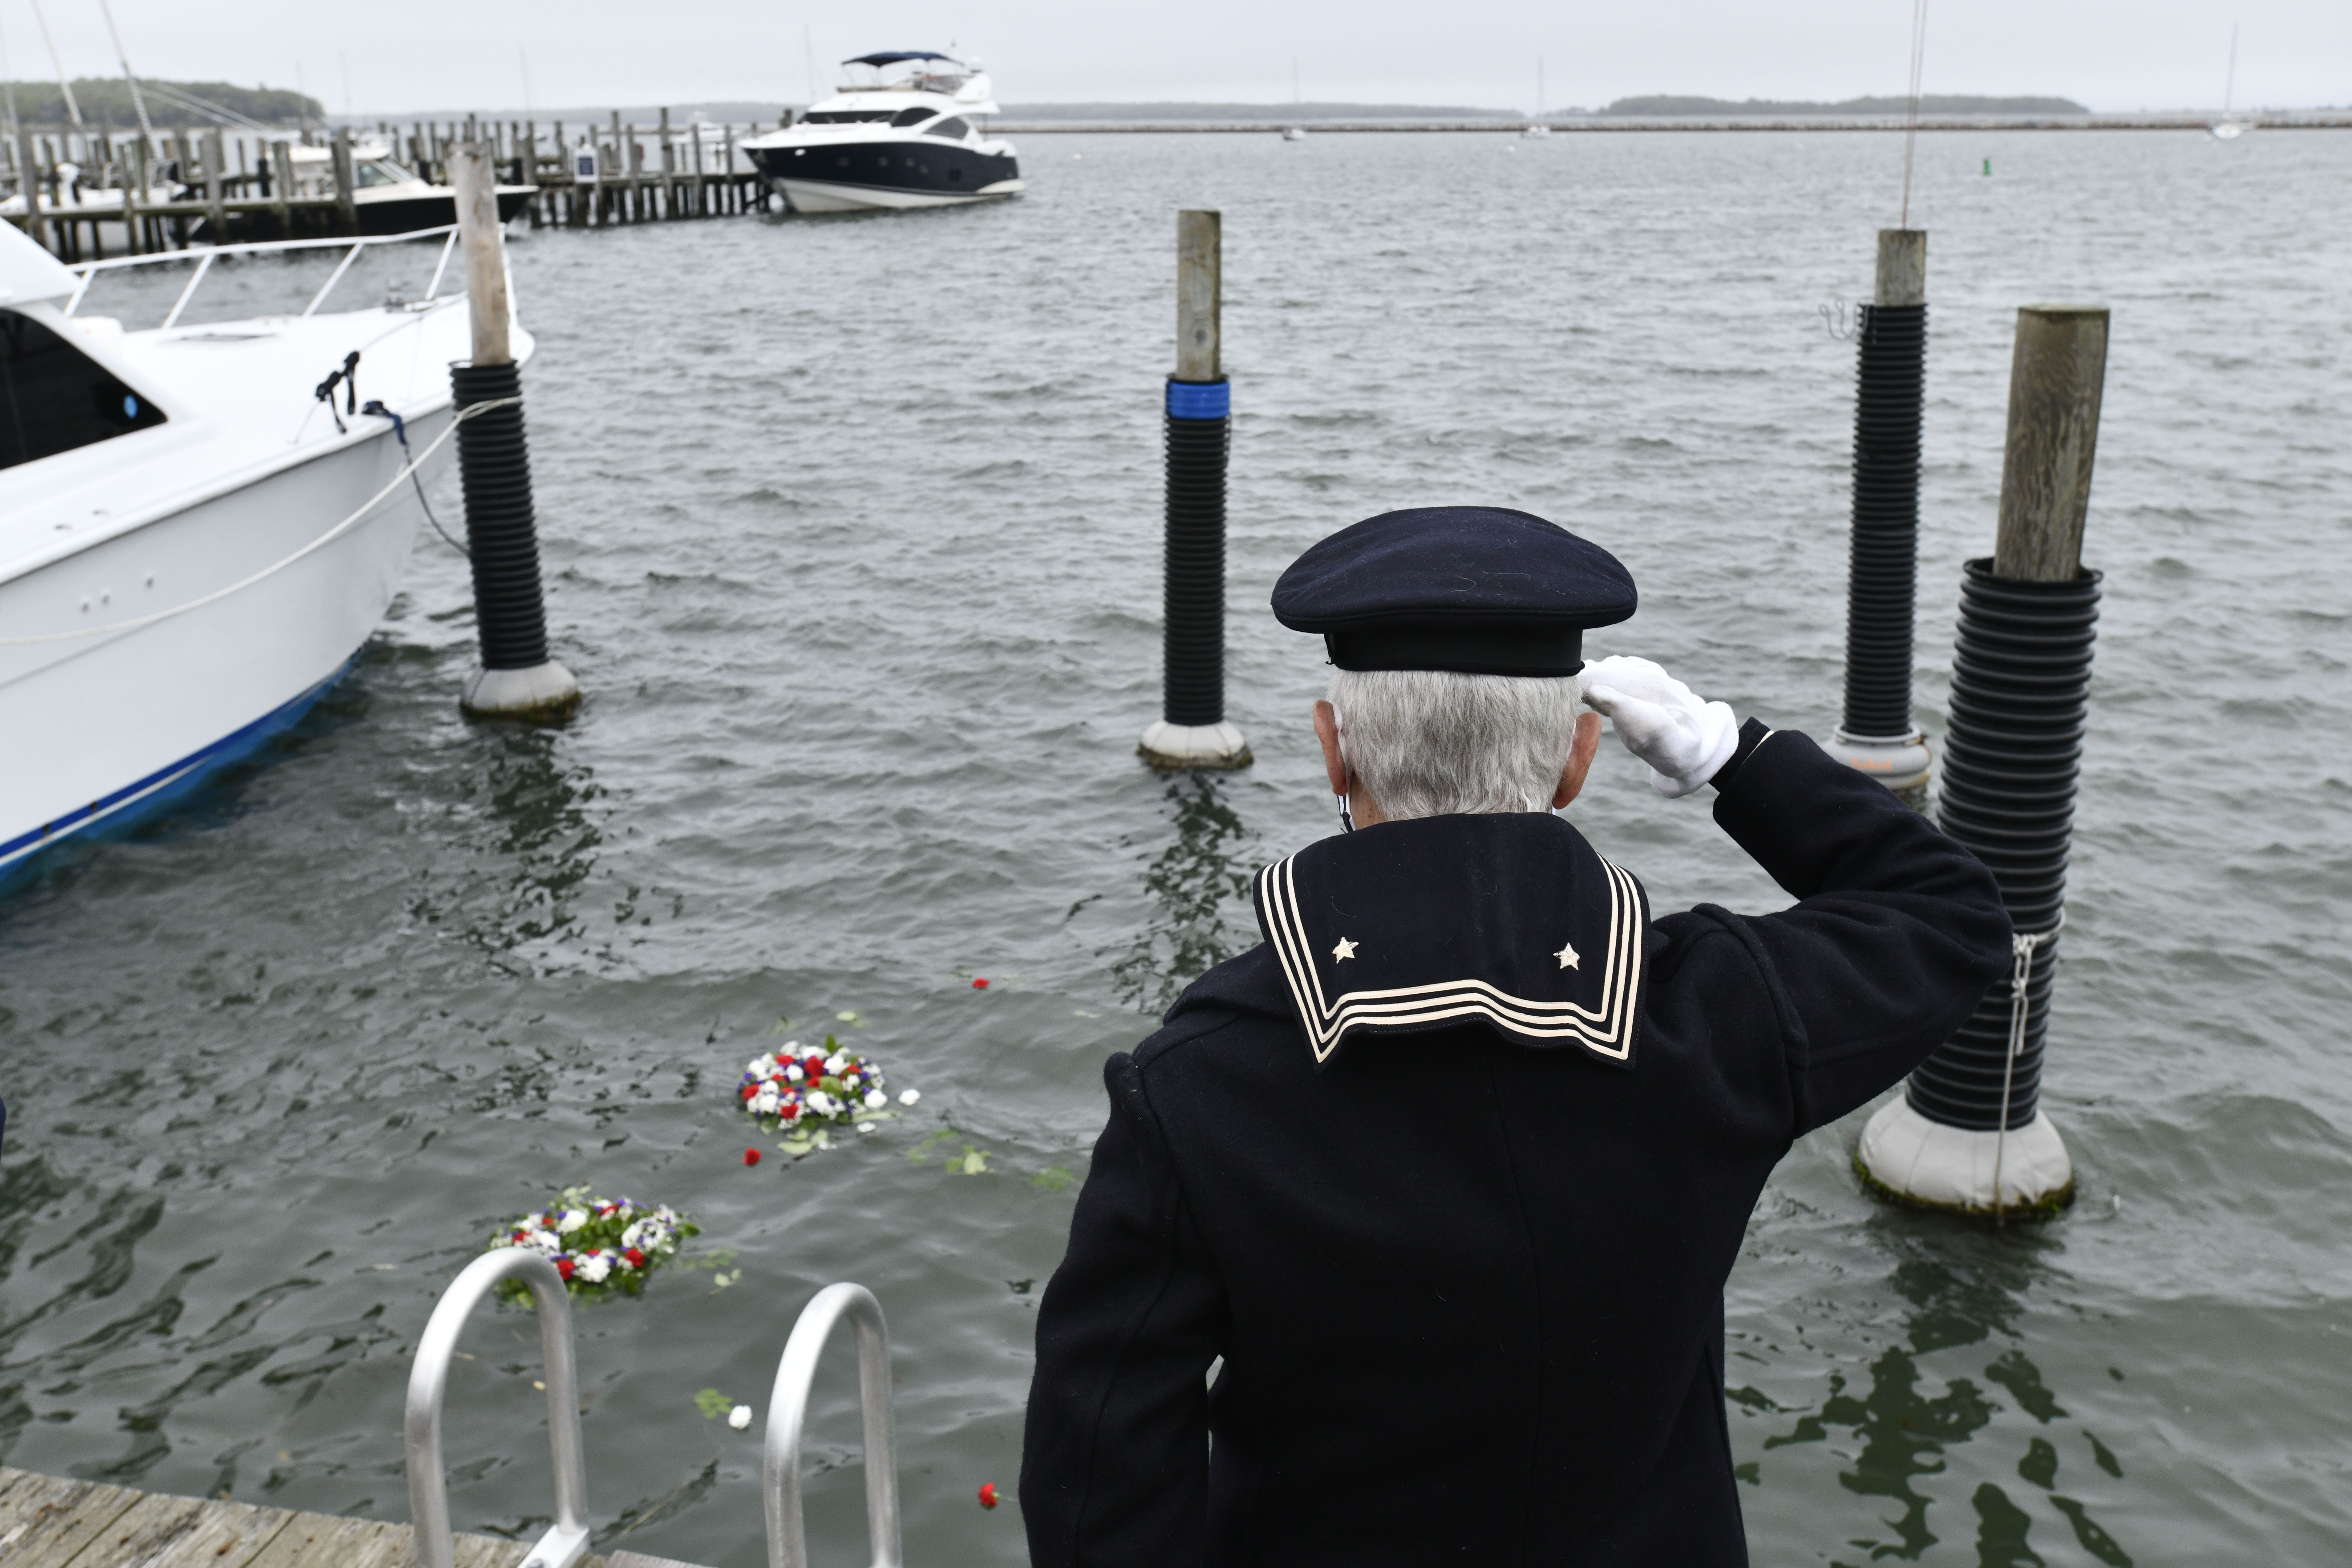 John Capello salutes during Memorial Day observances in Sag Harbor on Monday.